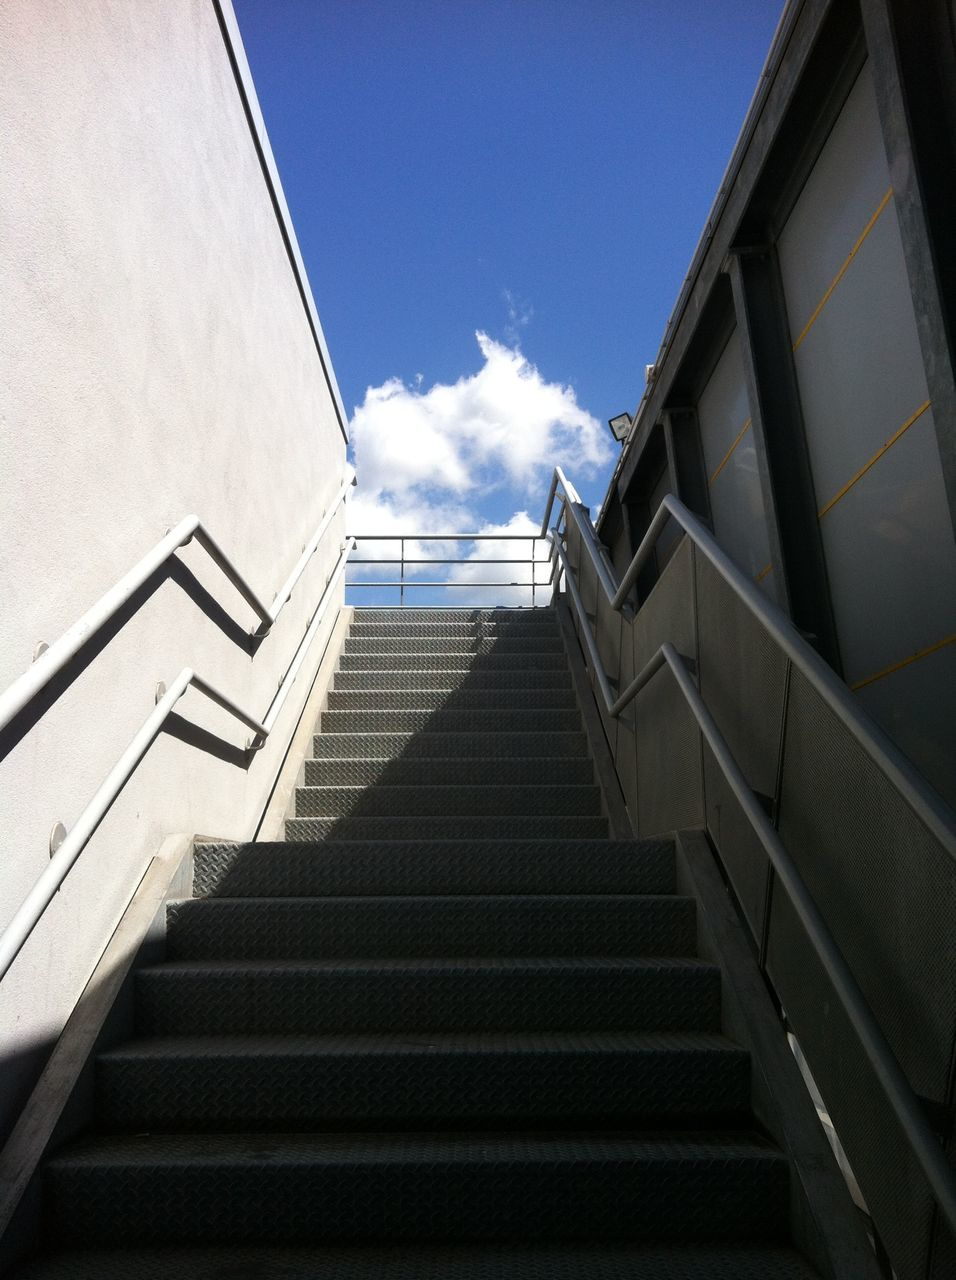 Low Angle View Of Steps Against Sky